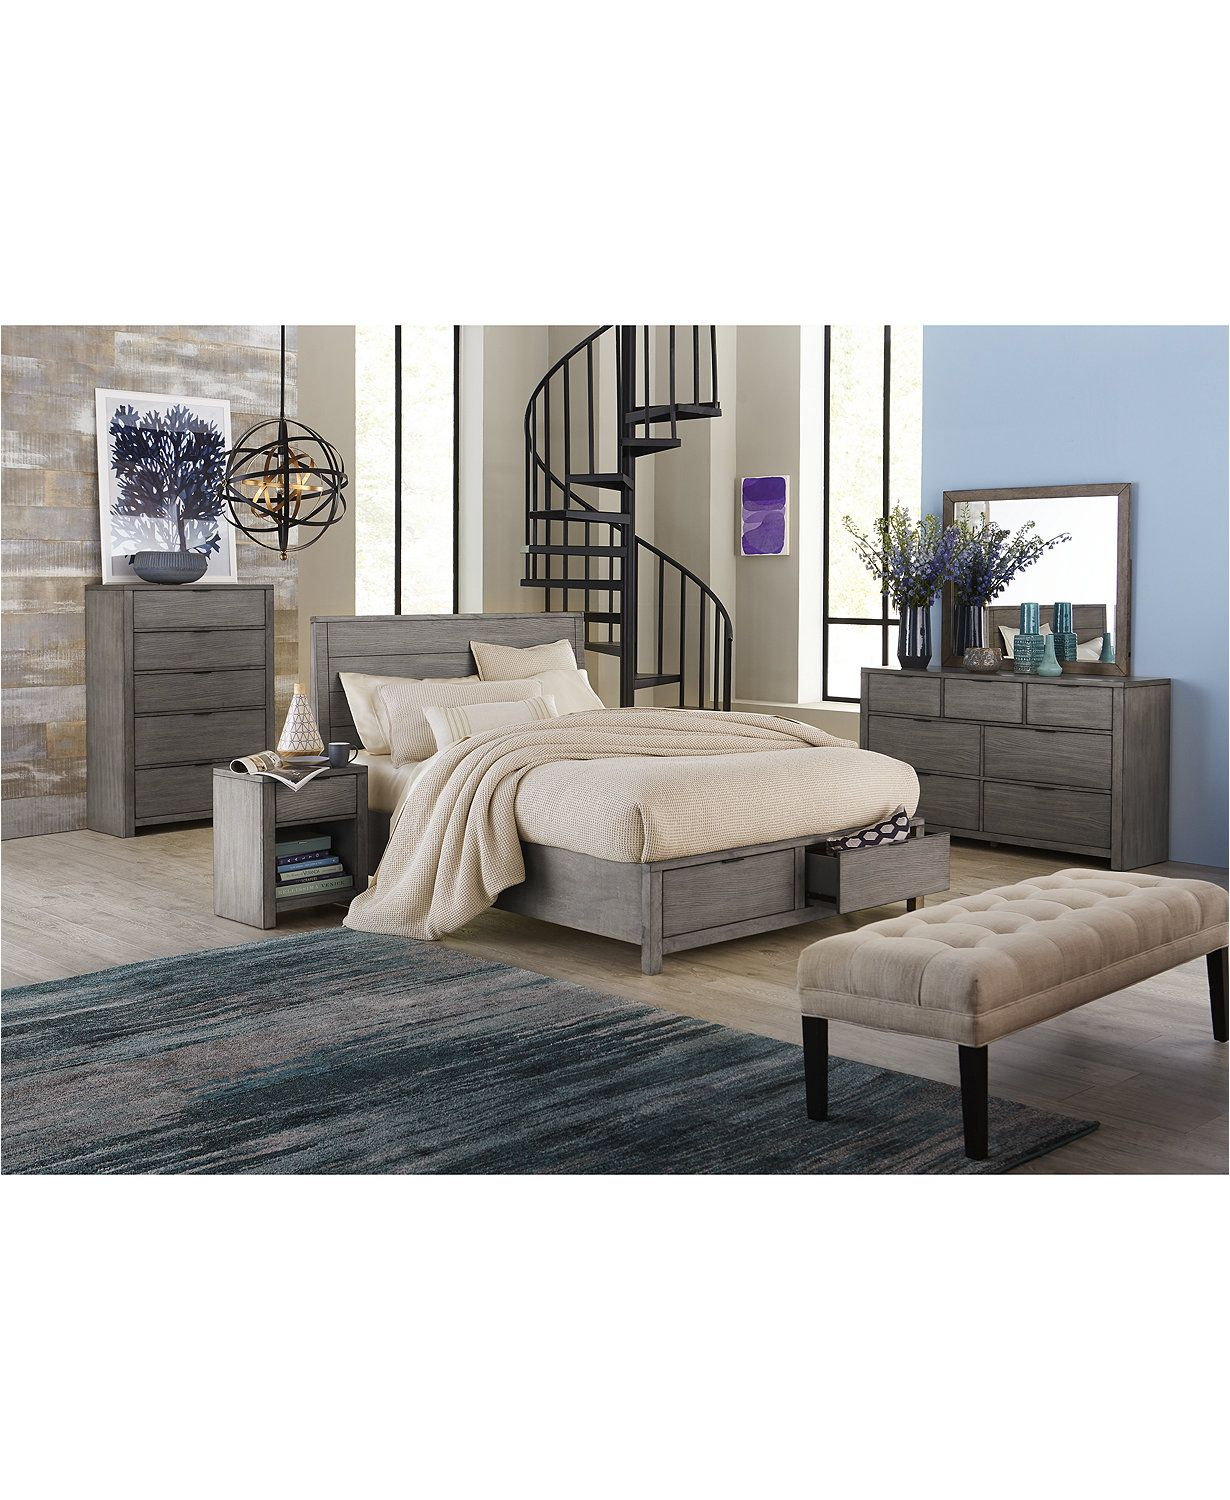 Tribeca Storage Bedroom Furniture, 3-Pc. Set (King Bed